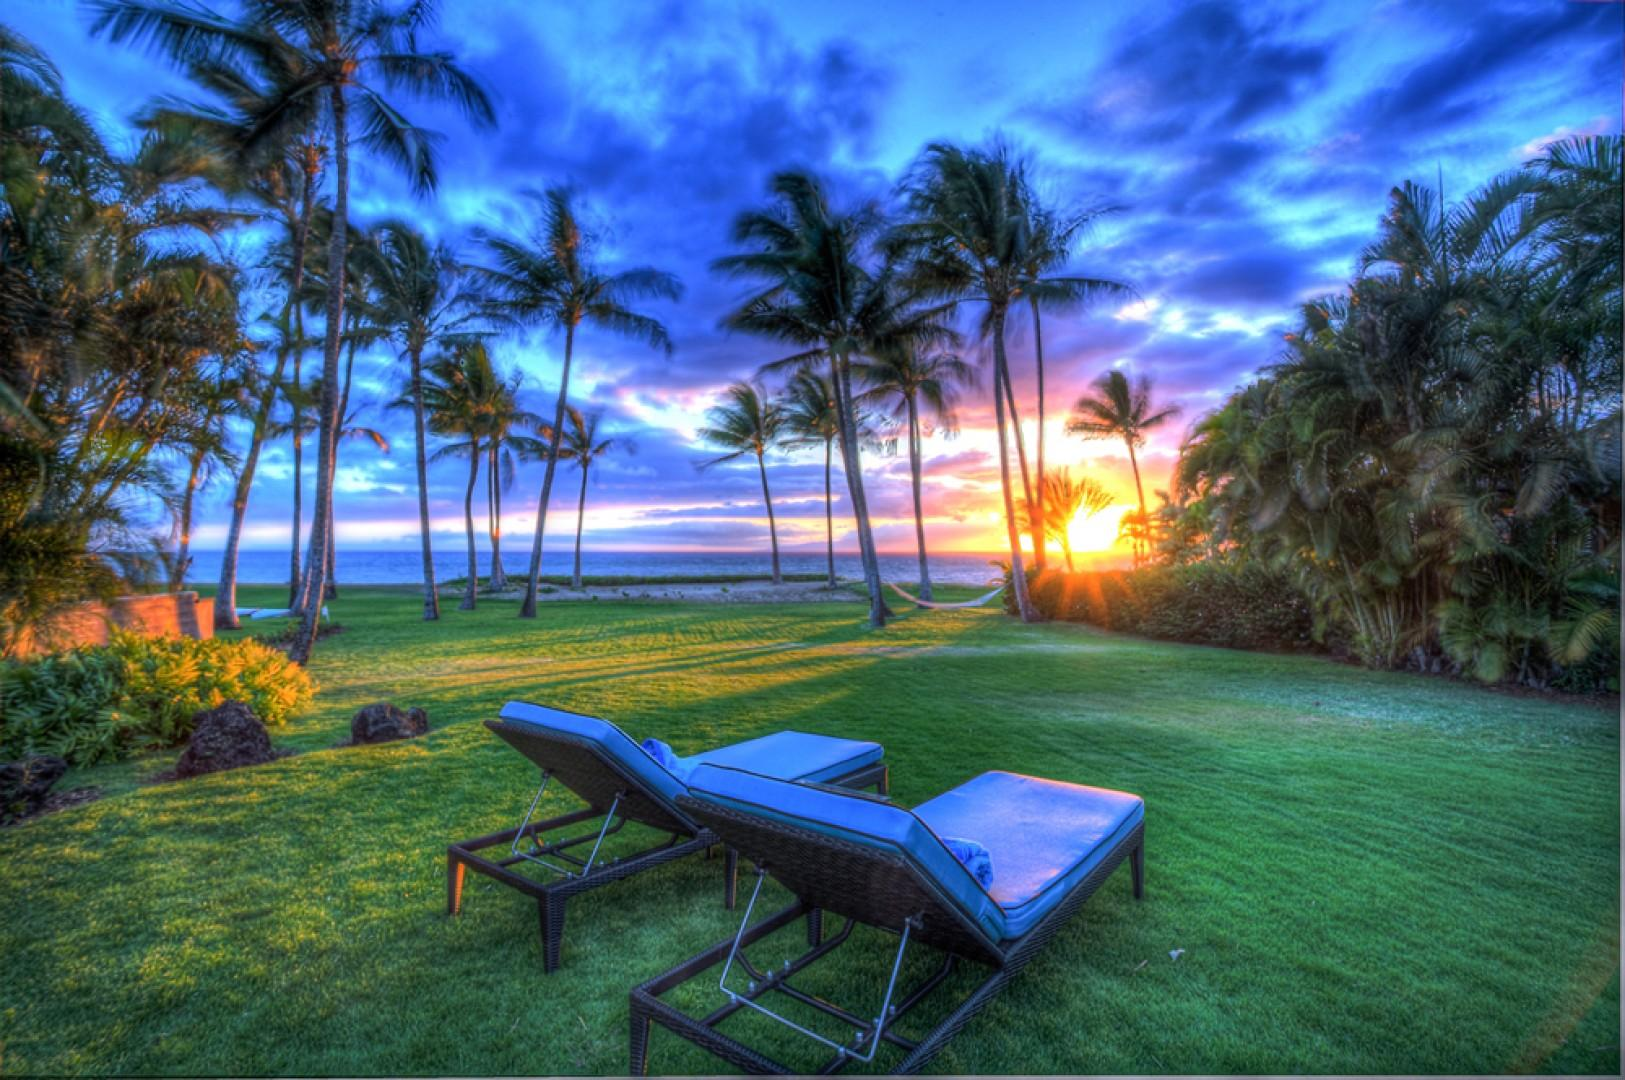 Mango Surf - Expansive Grass Lawn Property with Year-round Sunsets!